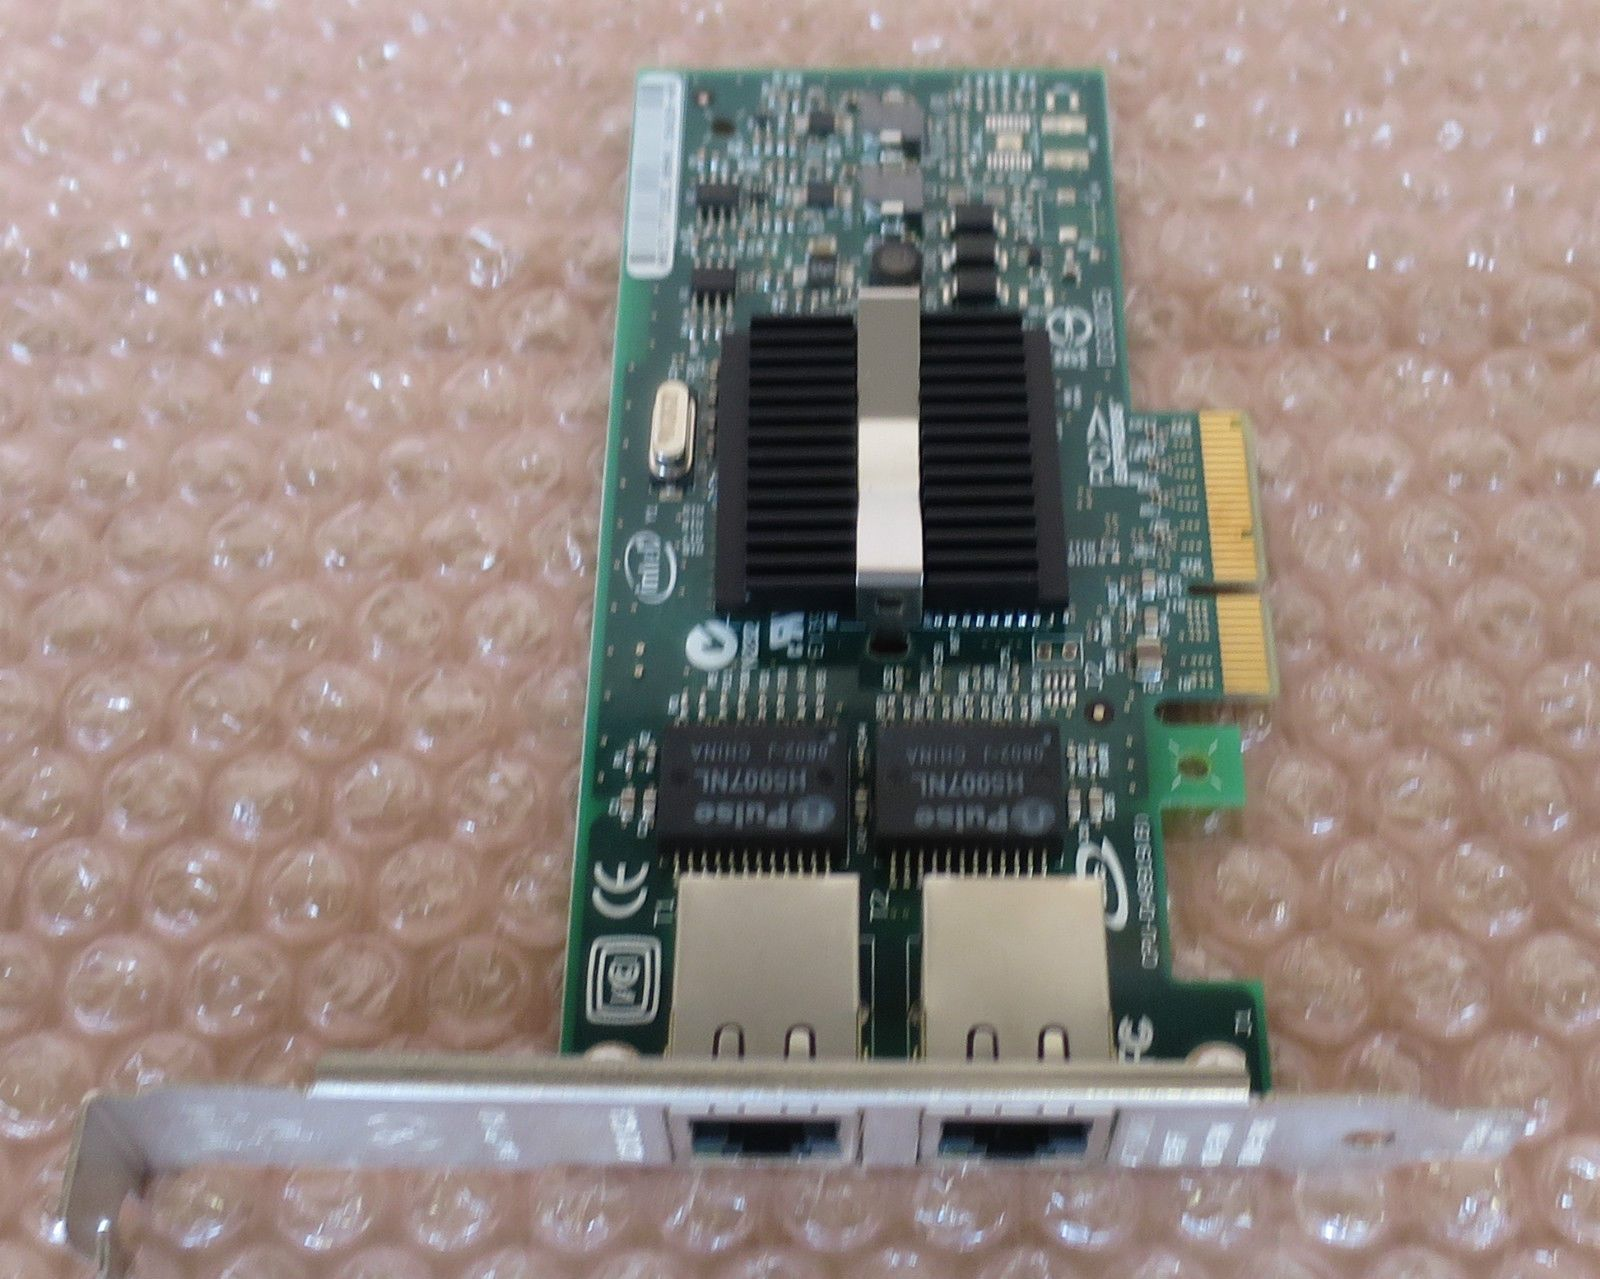 Intel PRO 1000 Dual Port Gigabit Network Adapter EXPI9402PT